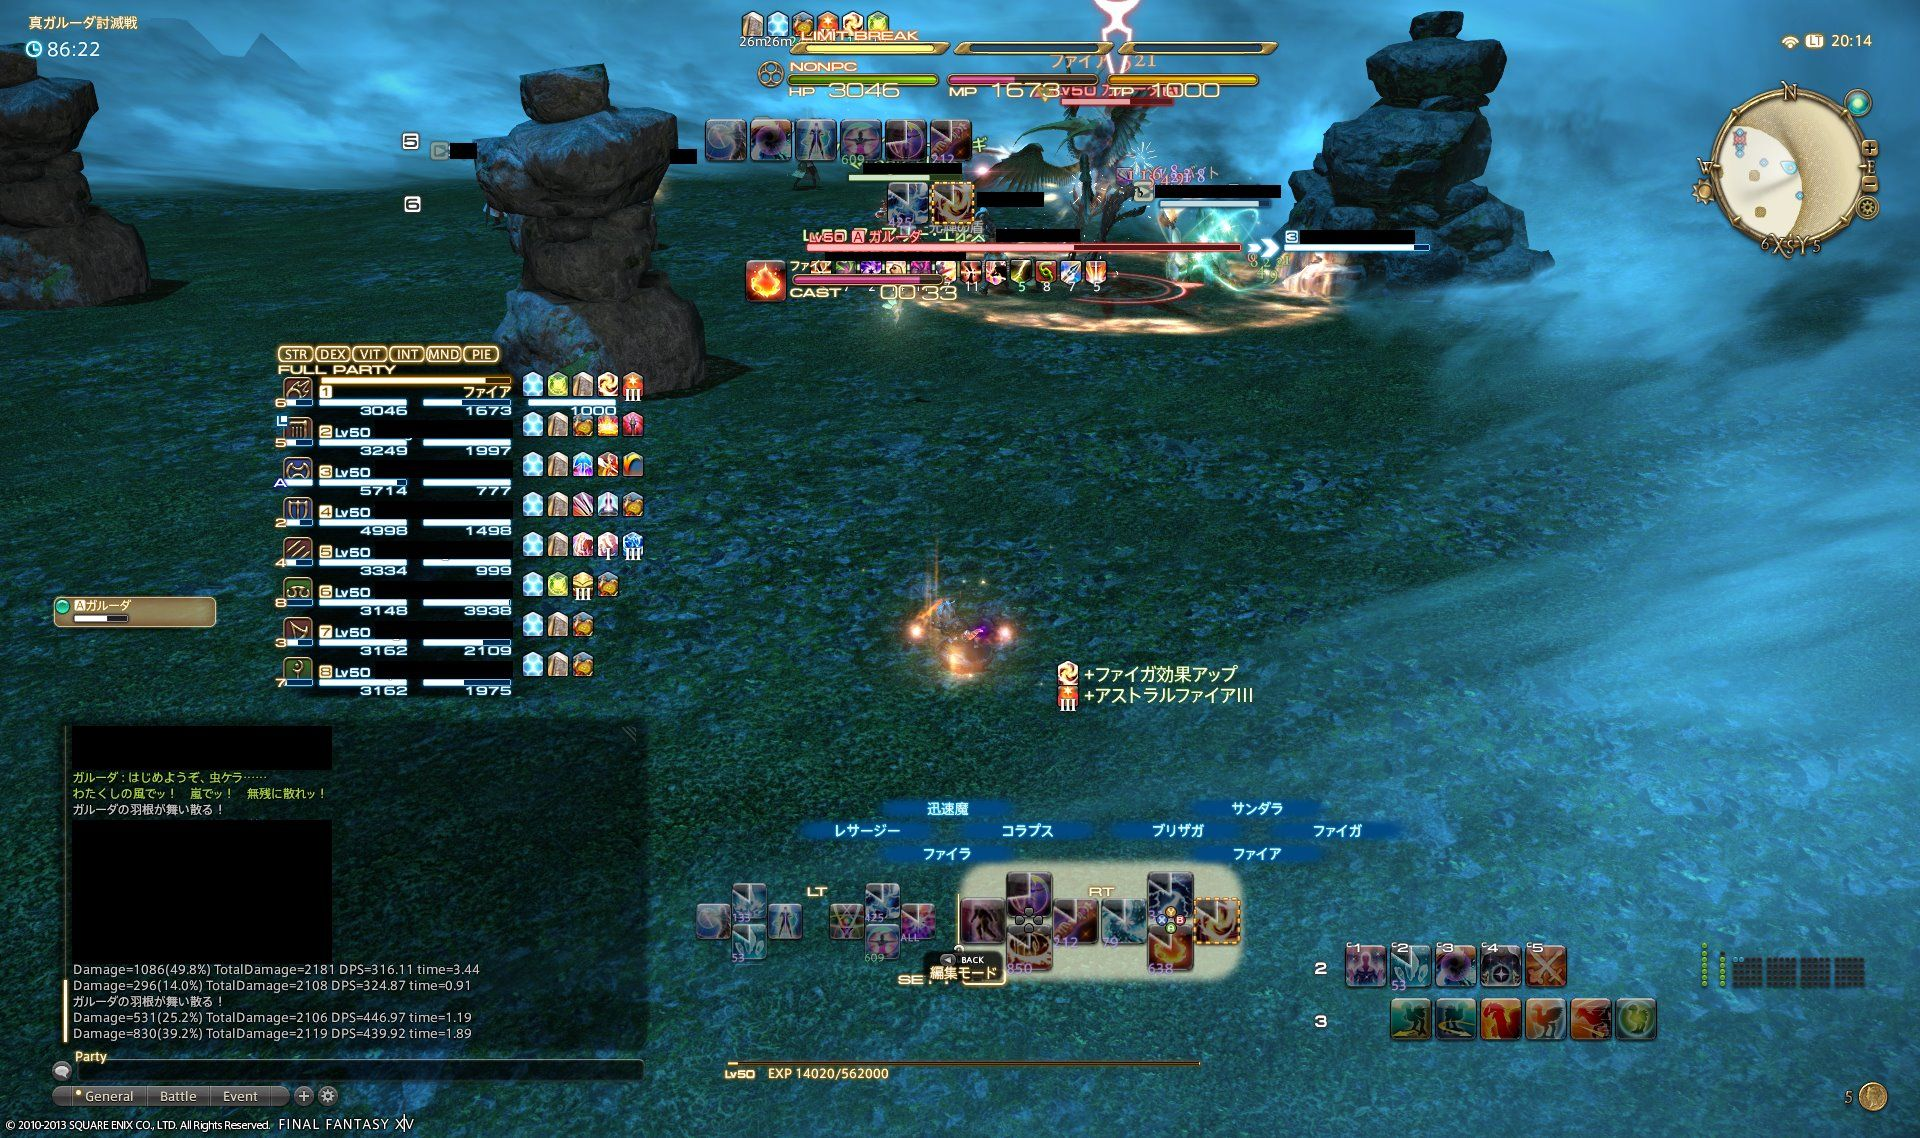 In This Screen Cap An Endgame Battle Raid Shows The Hypermediacy Of Final Fantasy Xiv At The Highest Level How To Be Outgoing Final Fantasy Xiv Final Fantasy